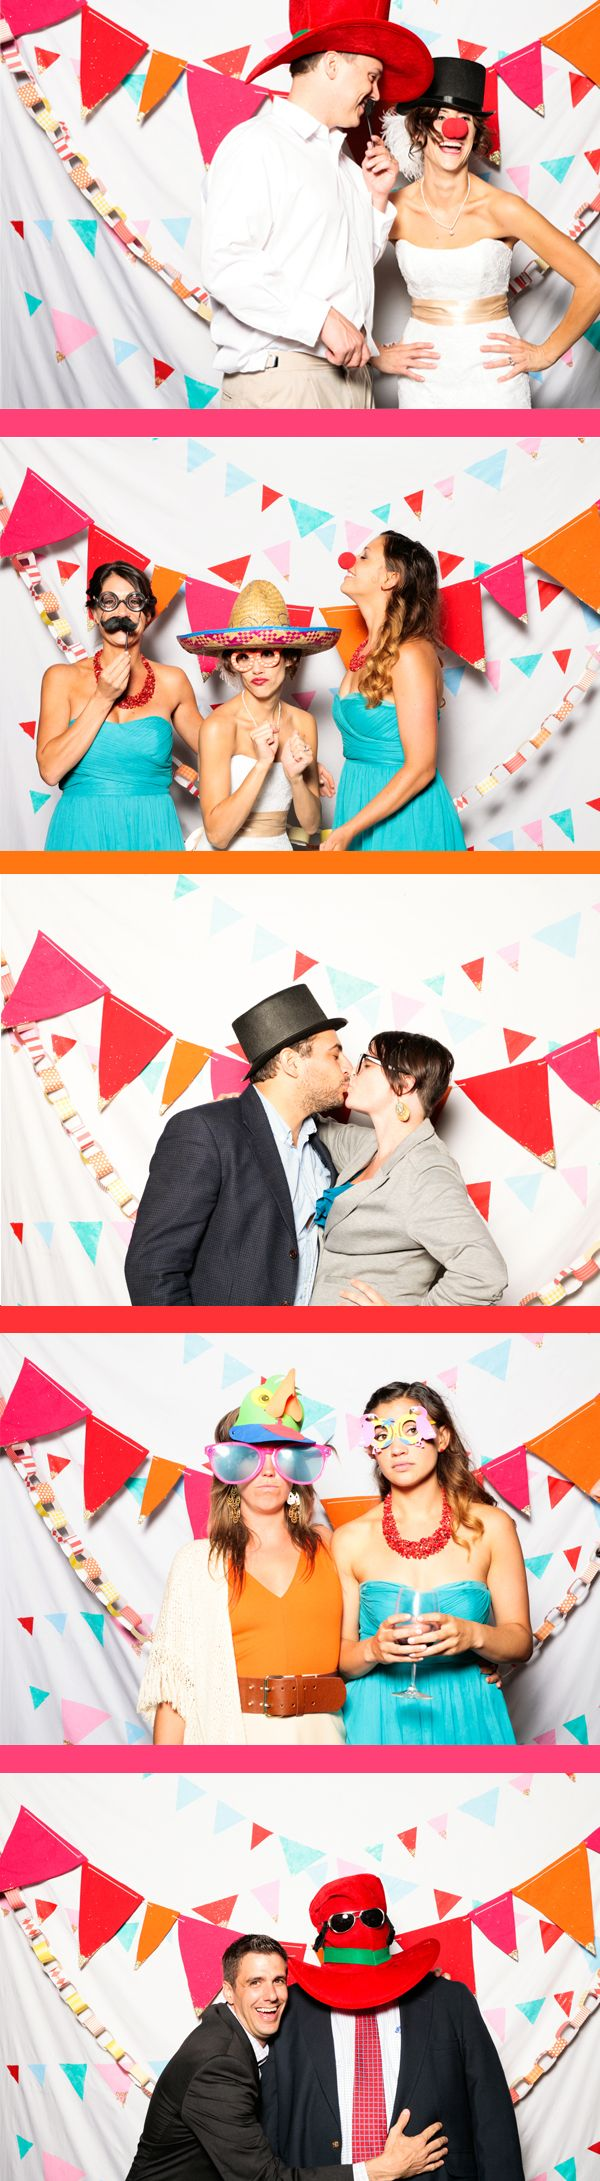 paper garland backdrop for photo booth